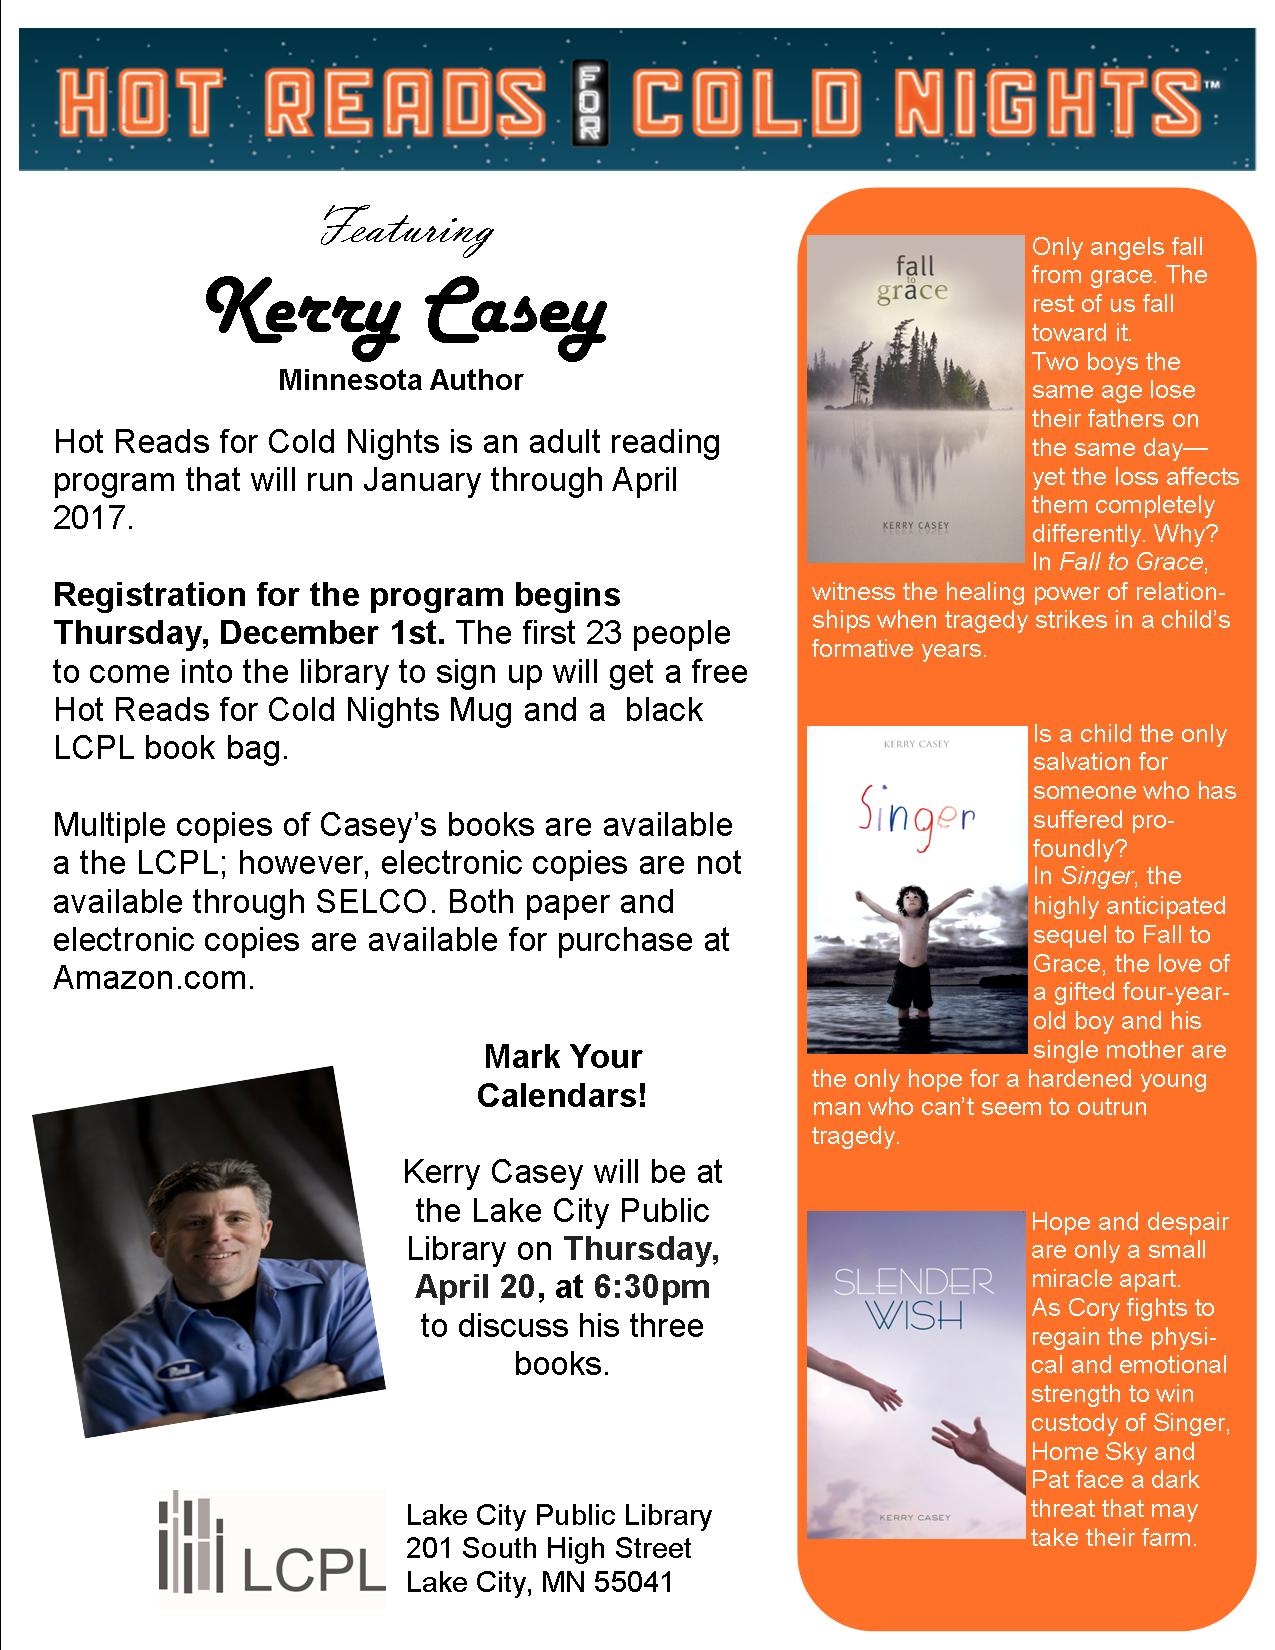 hot-reads-for-cold-nights-kerry-casey2